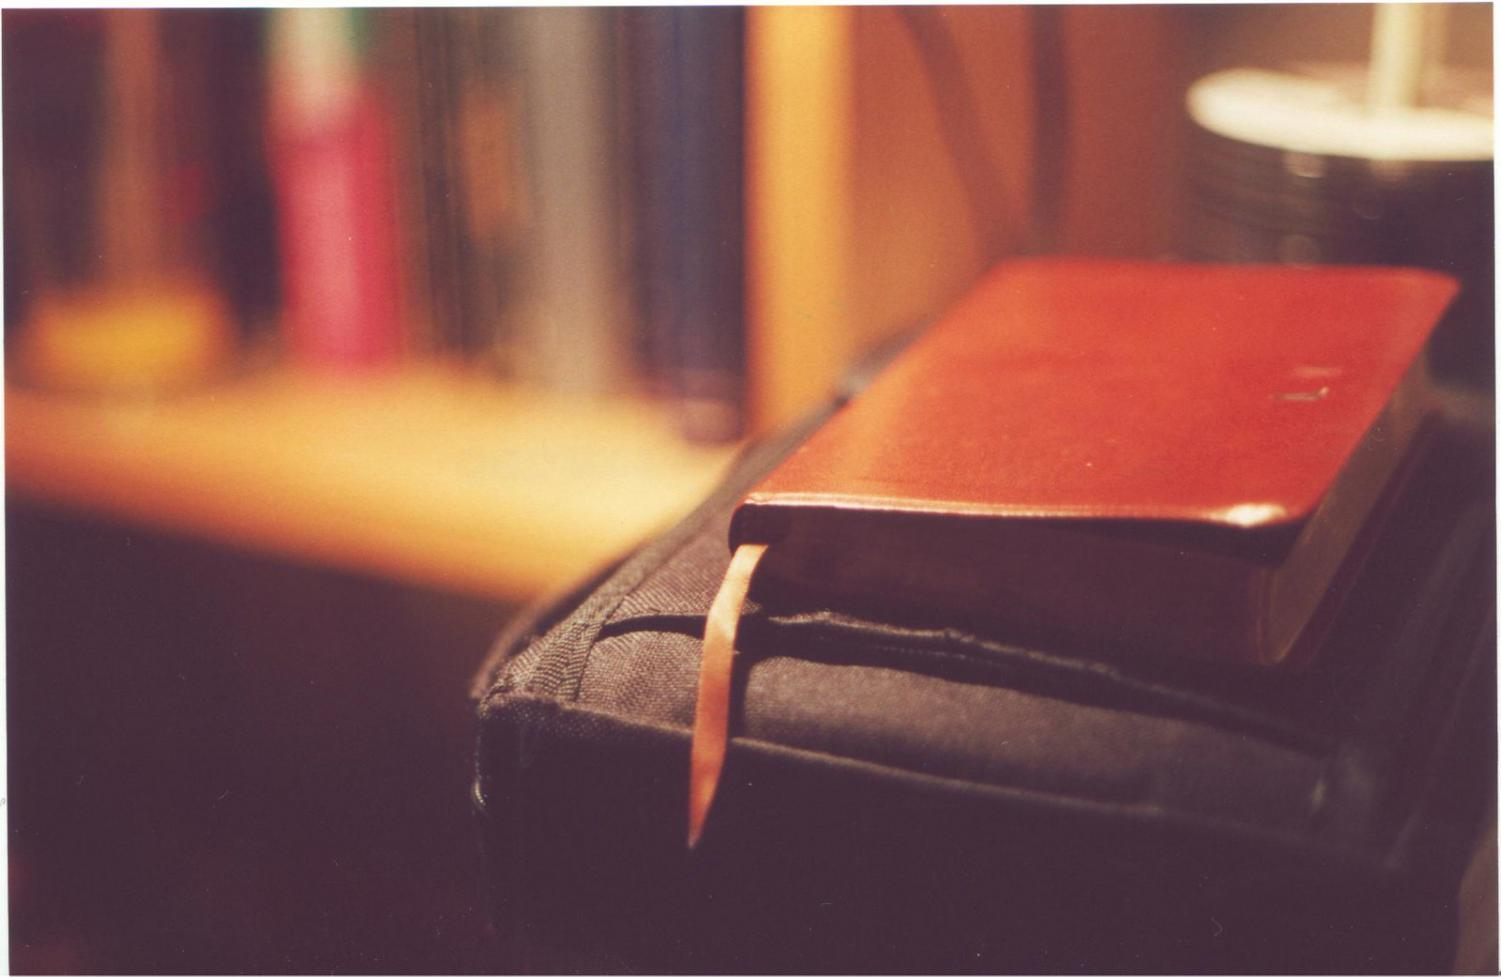 Valencia Colleges InterVarsity Christian Fellowship host Wednesday bible study at East Campus Building 6 in Room 204.